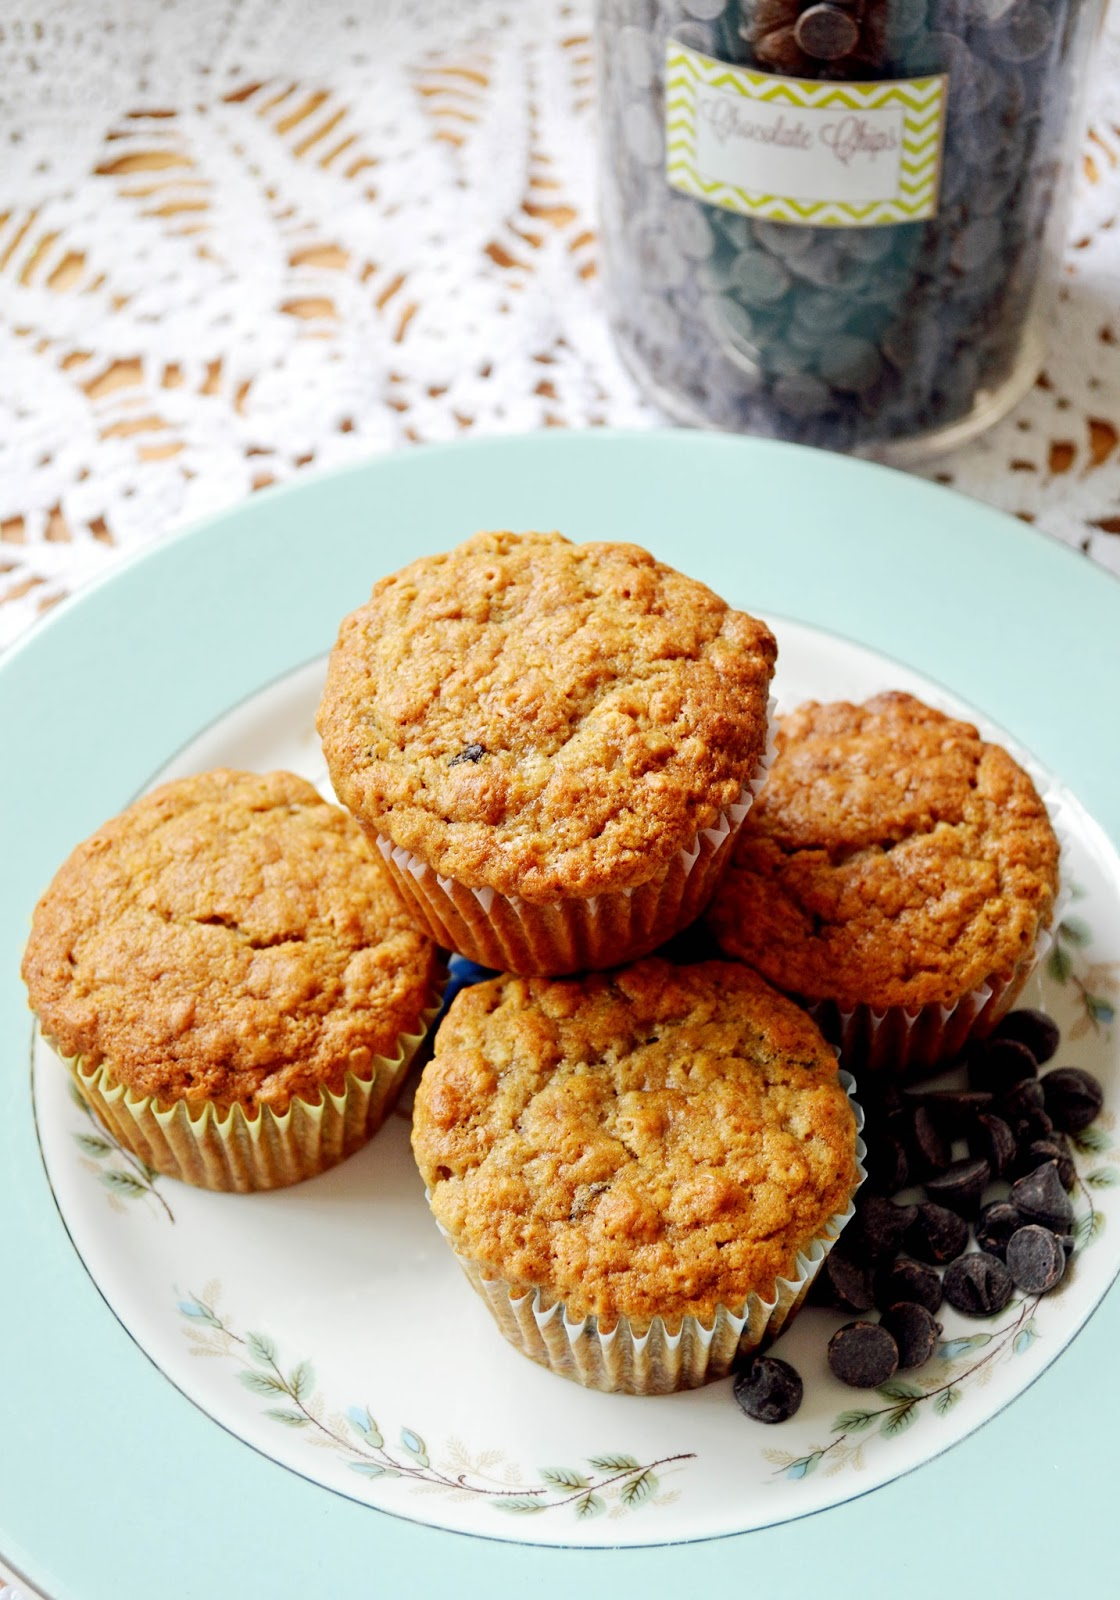 ... Life:The Art of the Everyday: Spelt Banana Chocolate Coconut Muffins